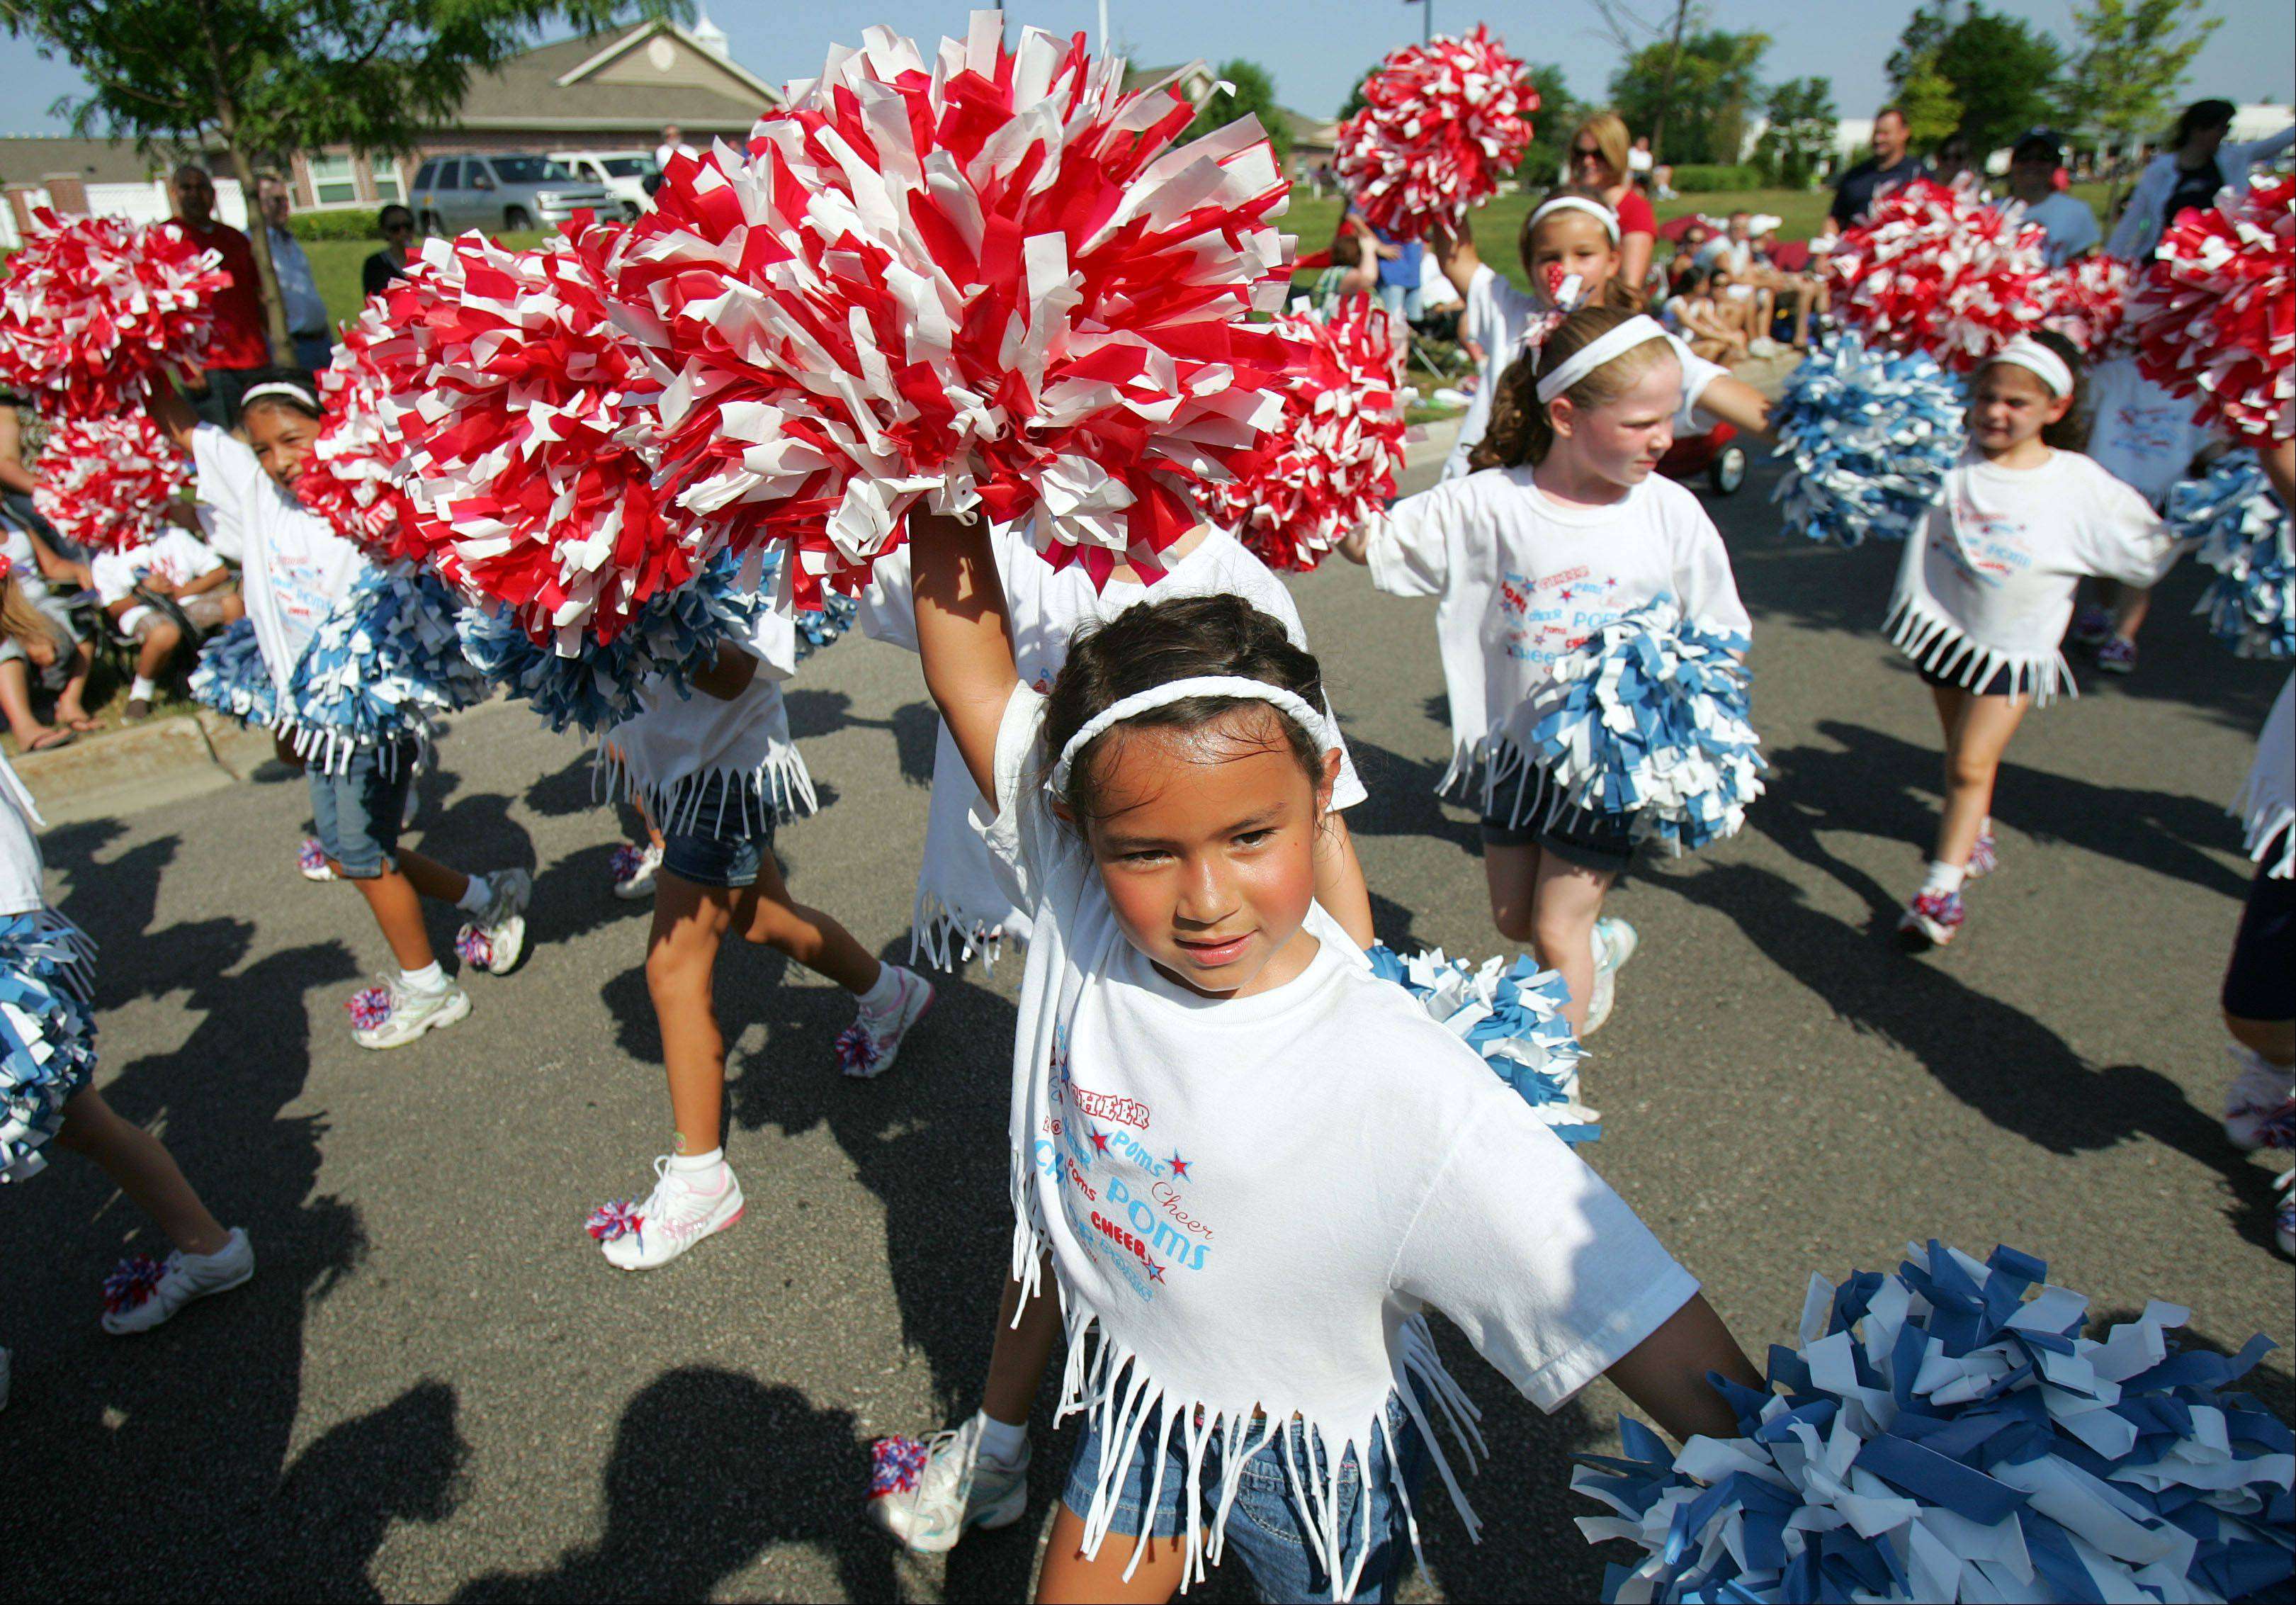 The Vernon Hills Park District poms and cheer perform for the crowd during the Vernon Hills Fourth of July Parade Wednesday morning on Deerpath Drive.